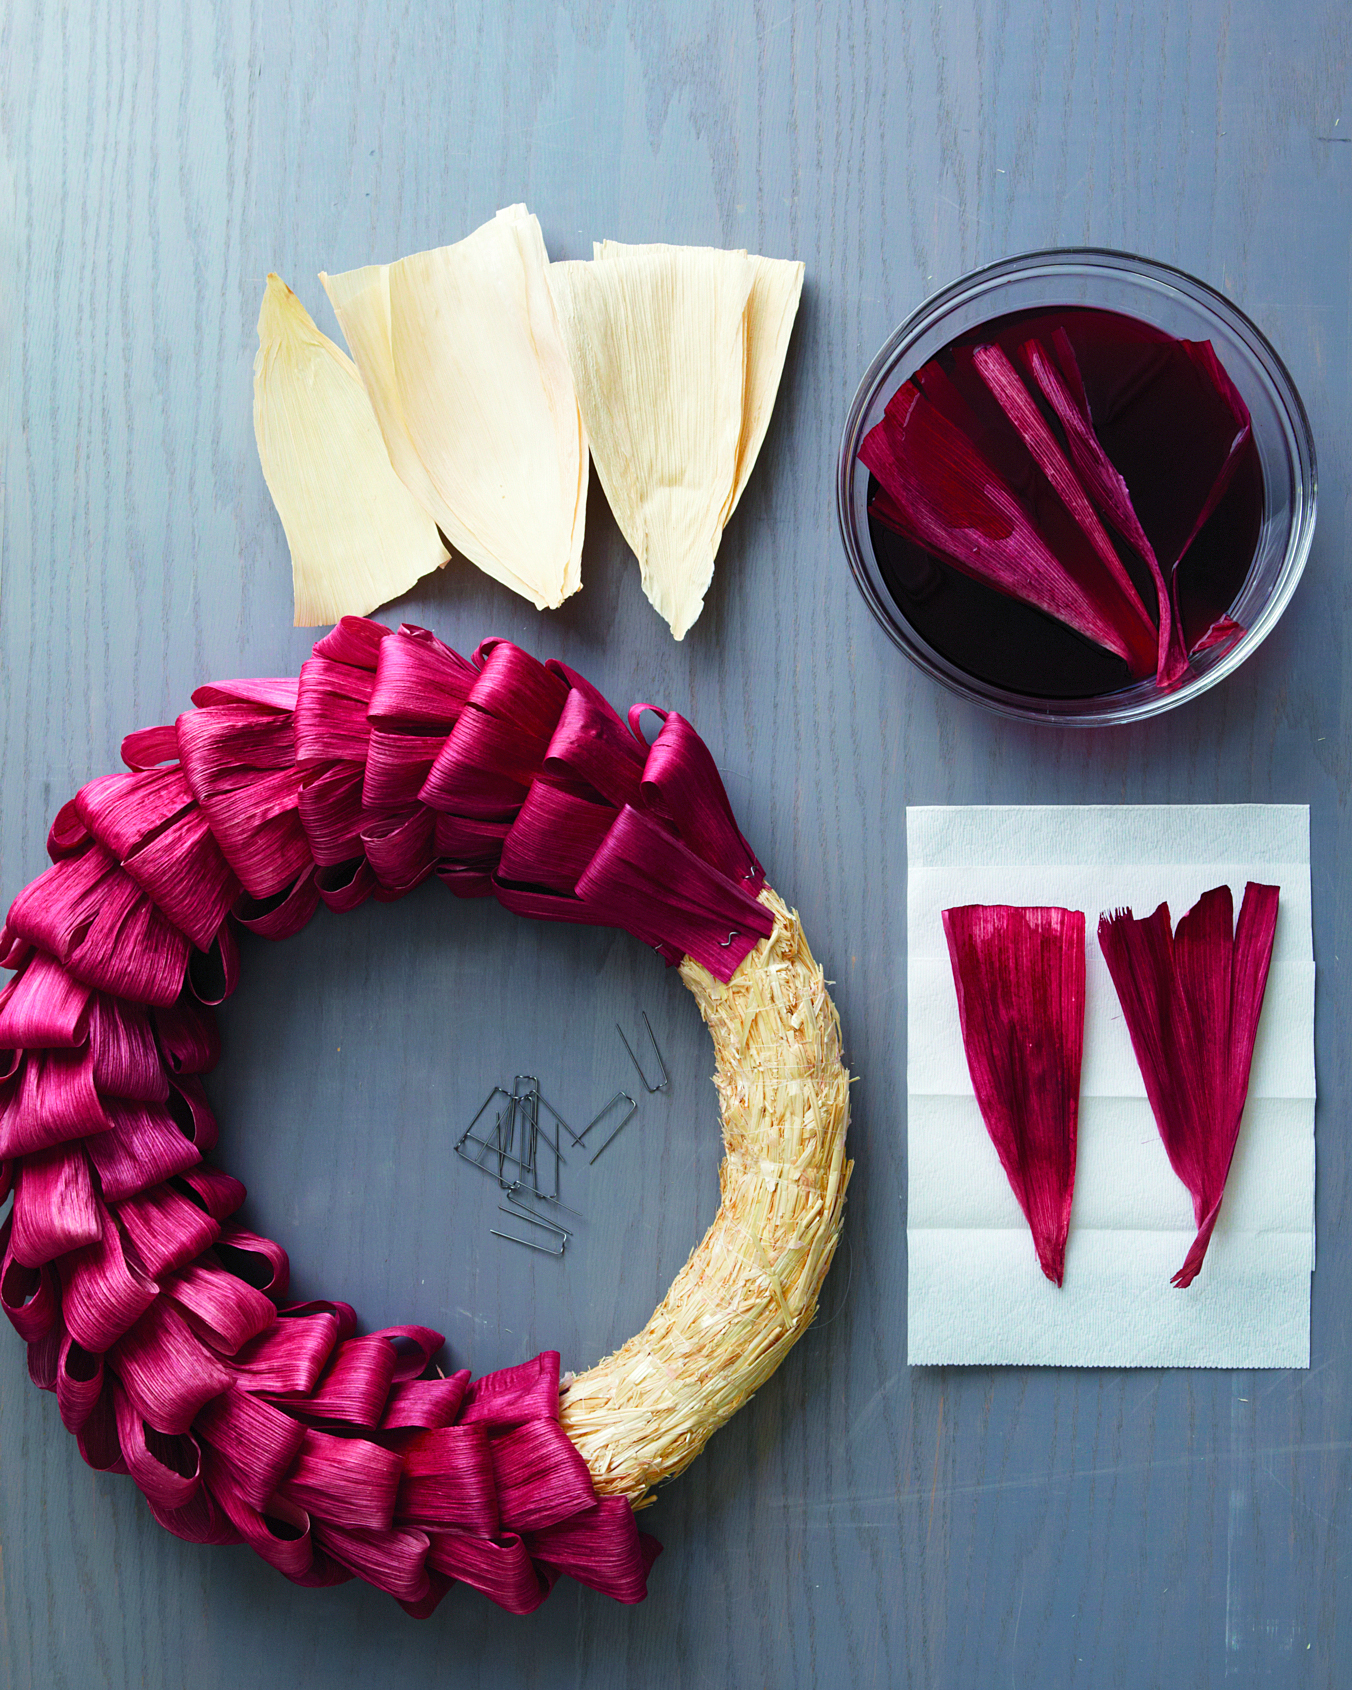 supplies for a corn husk wreath